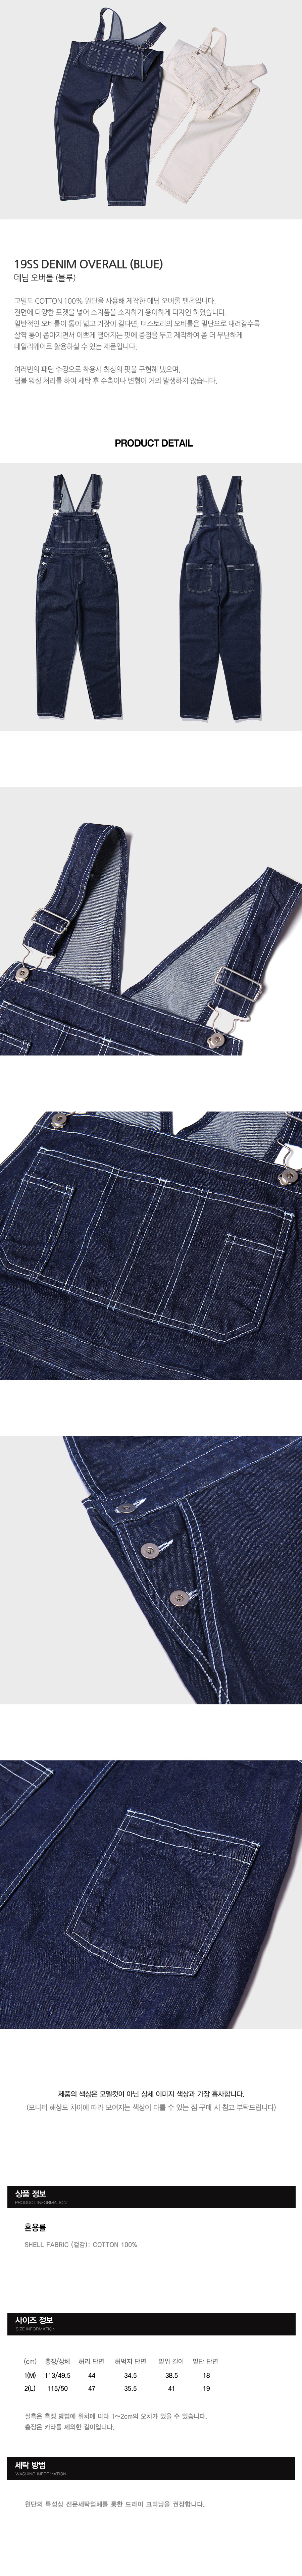 더스토리(THESTORI) DENIM OVERALL (BLUE)